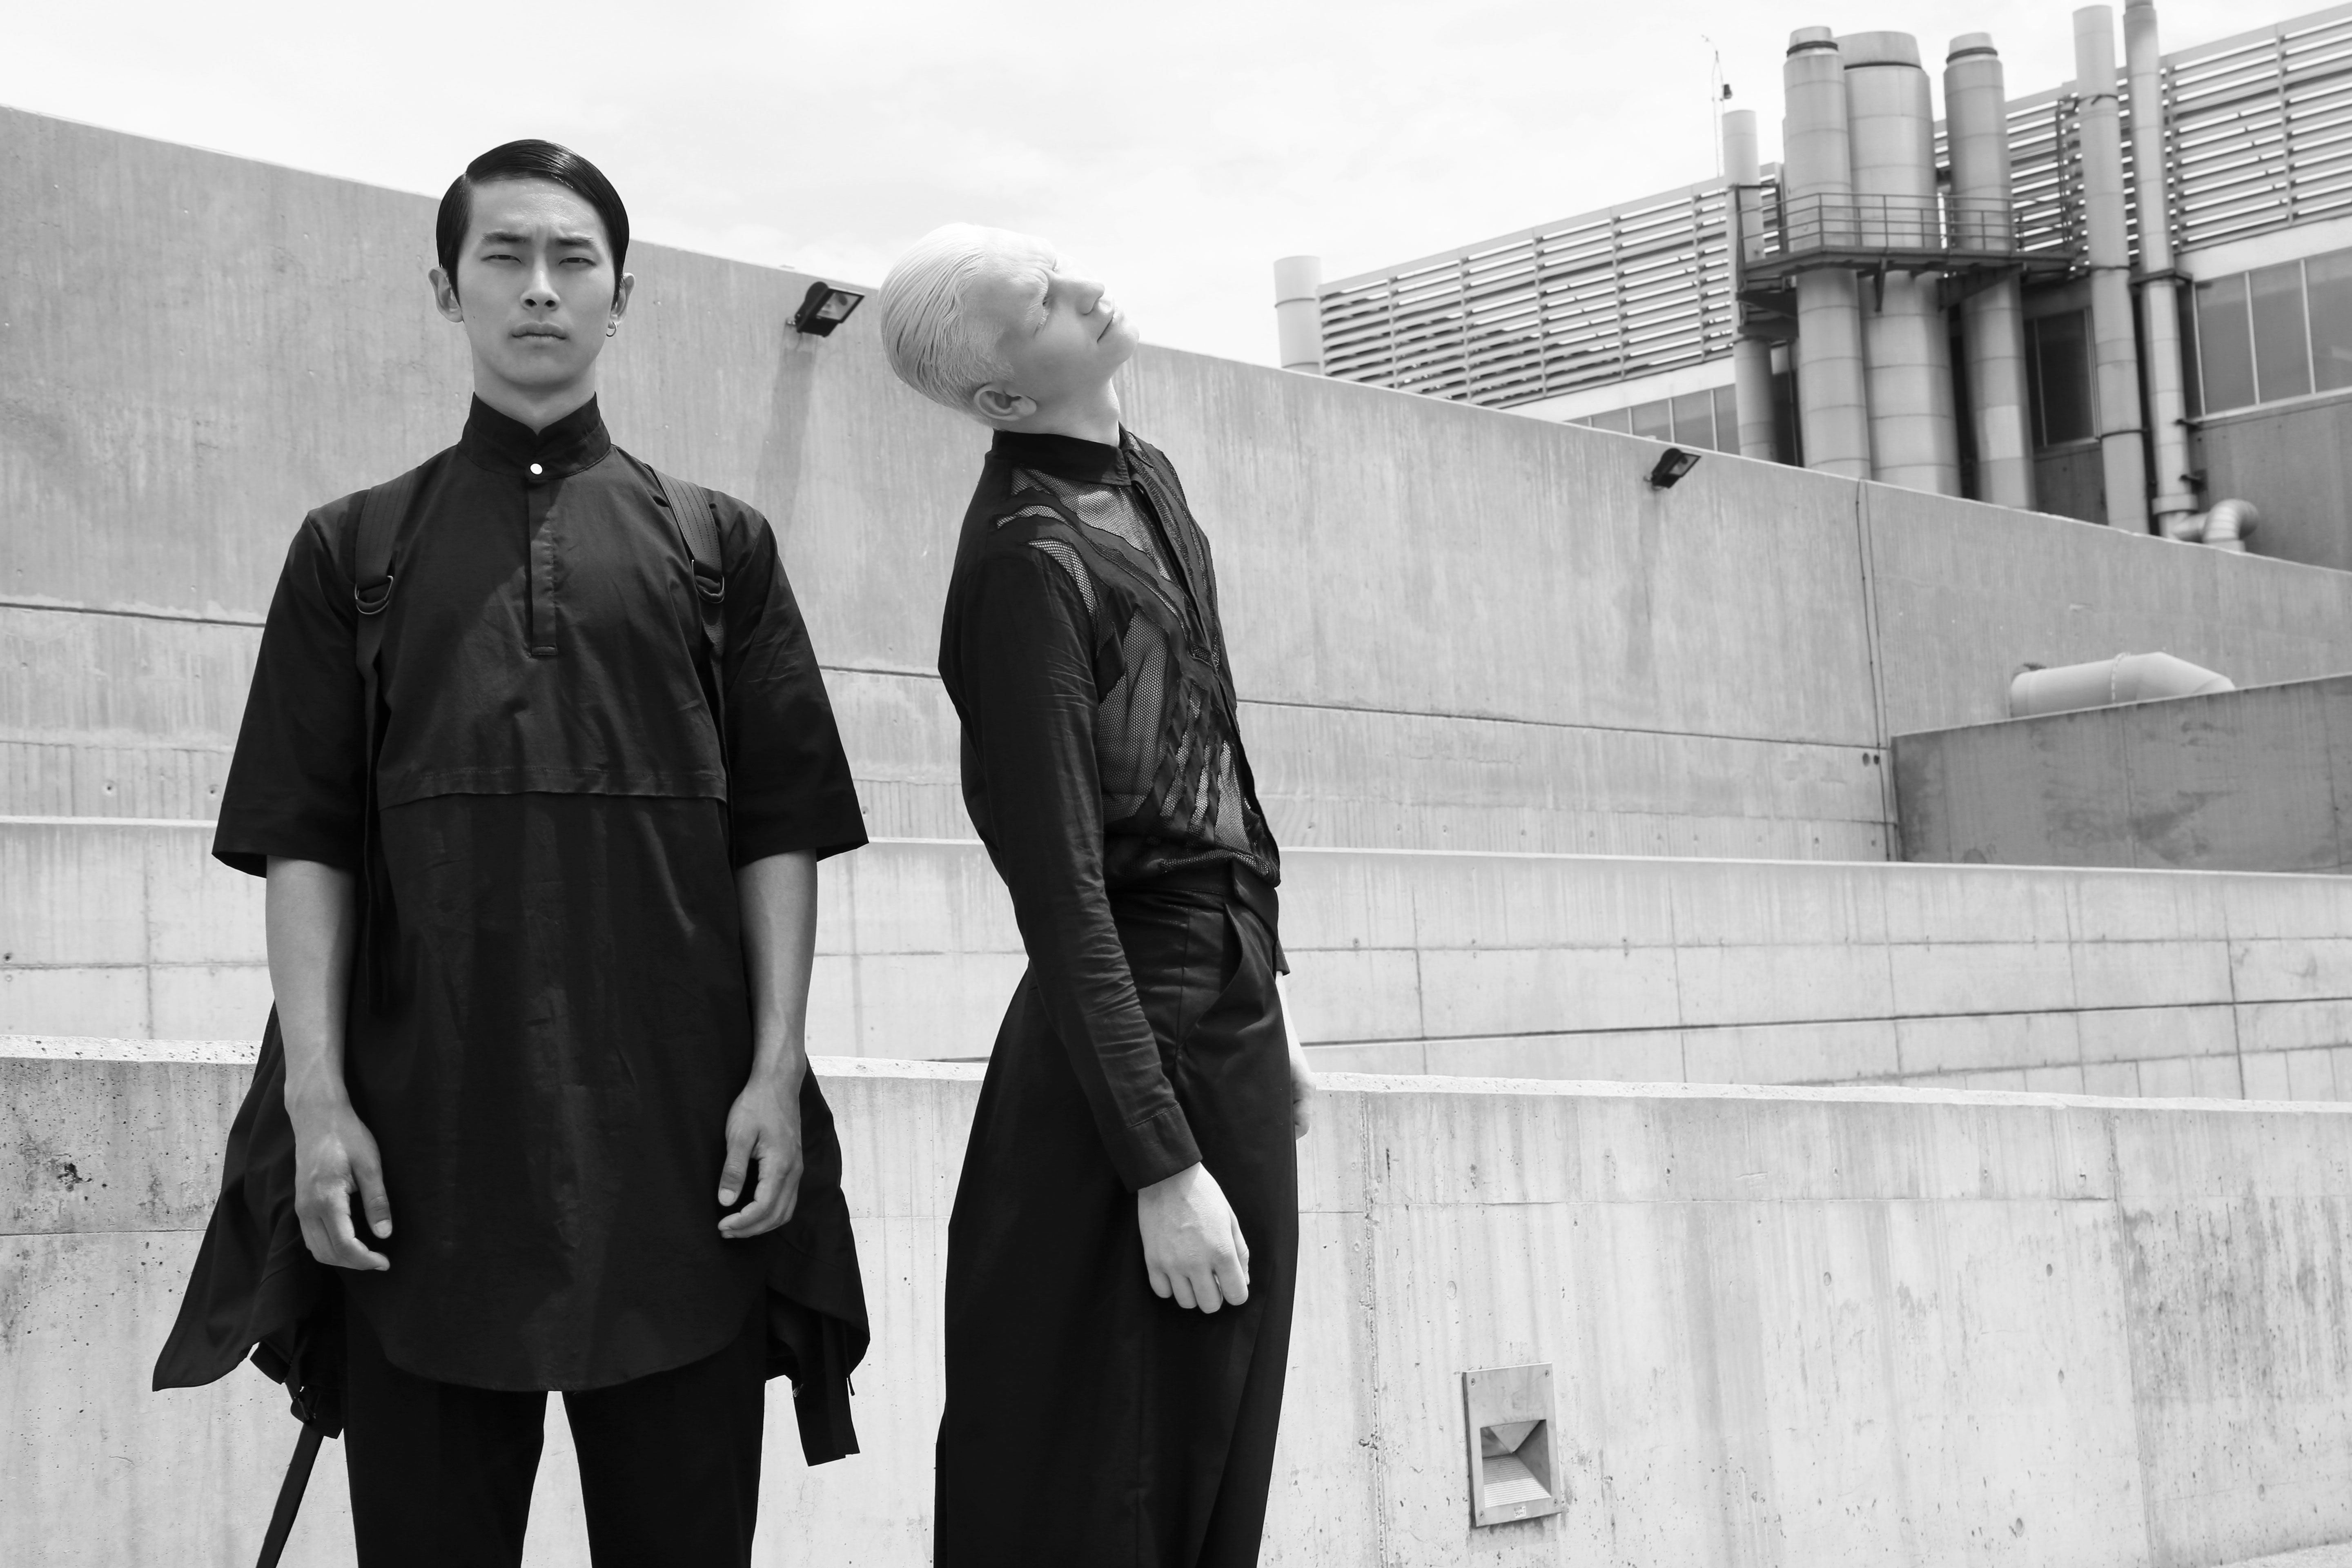 jnorig menswear. two models against a grey background, all dressed in structured black.